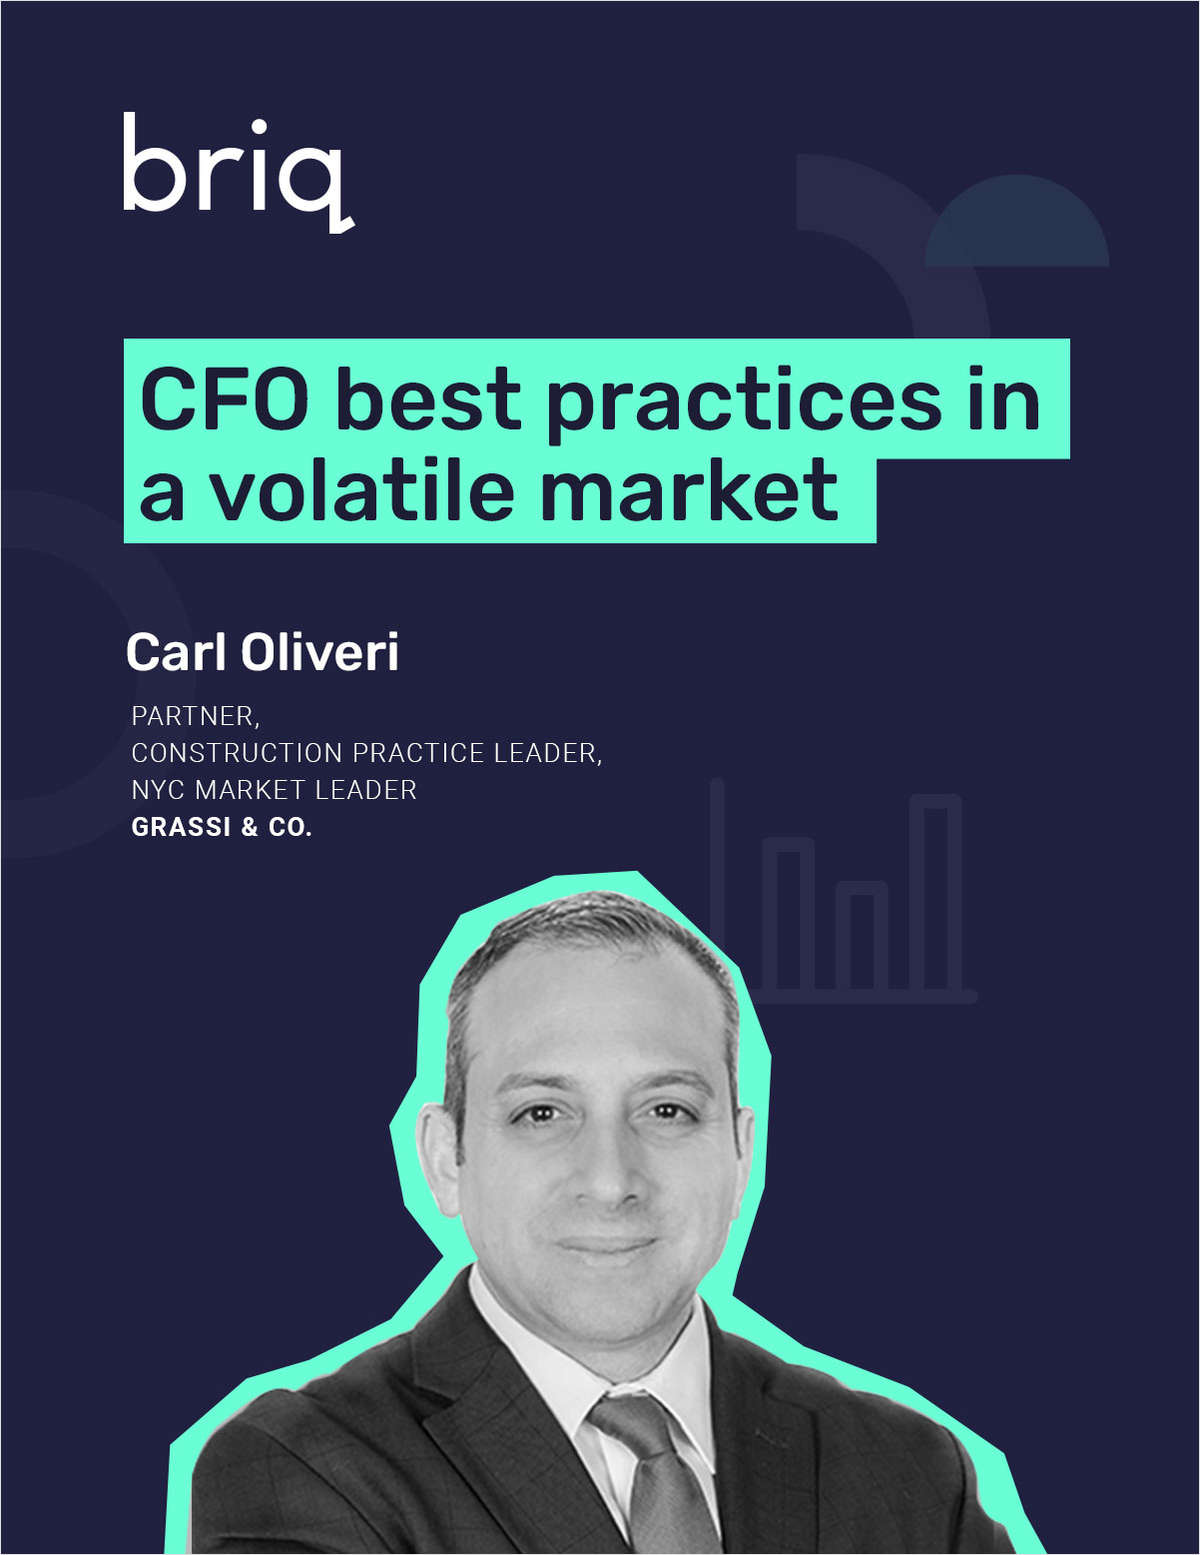 CFO Best Practices for a Volatile Market with Carl Oliveri